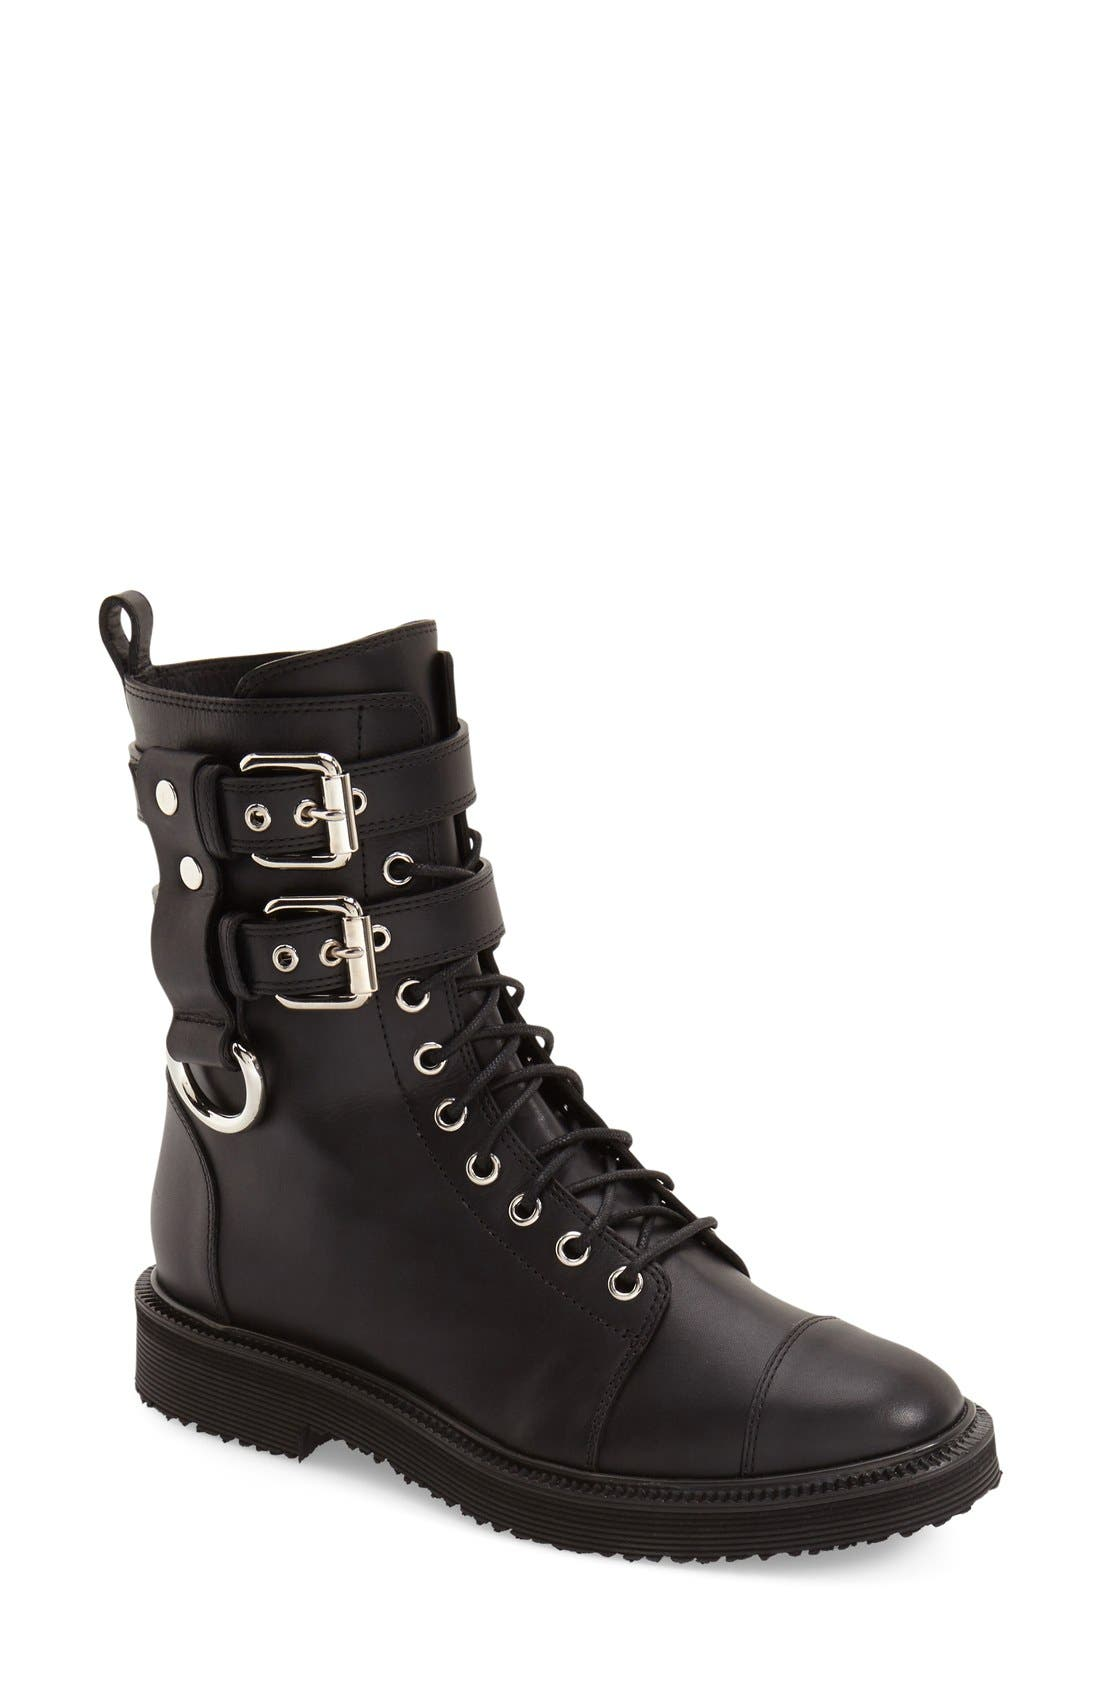 Main Image - Giuseppe Zanotti 'Hilary' Military Boot (Women)